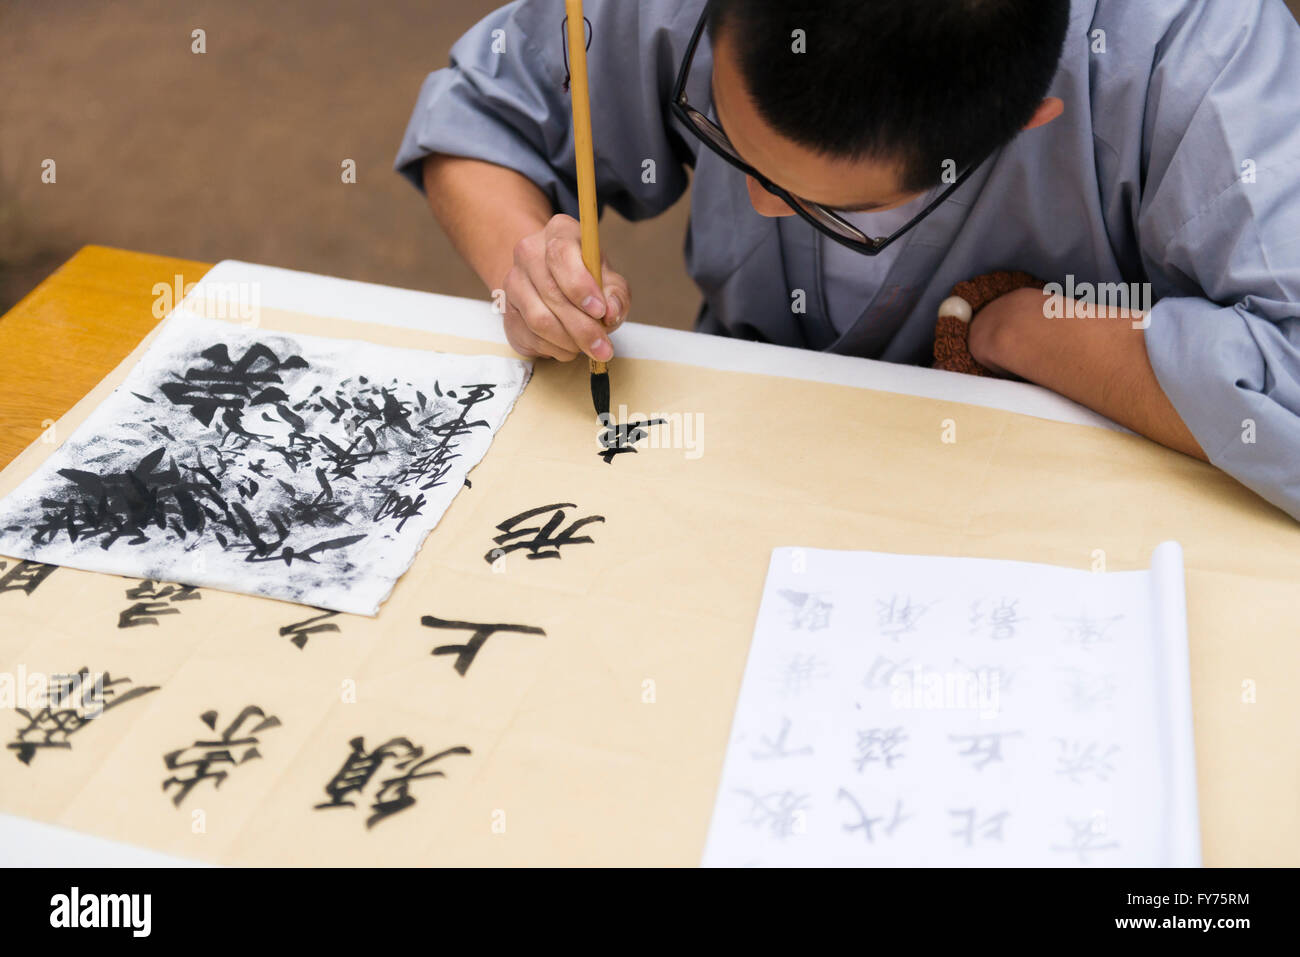 Student of a Shaolin martial arts school practices Chinese calligraphy, Dengfeng, Zhengzhou, Henan, China - Stock Image